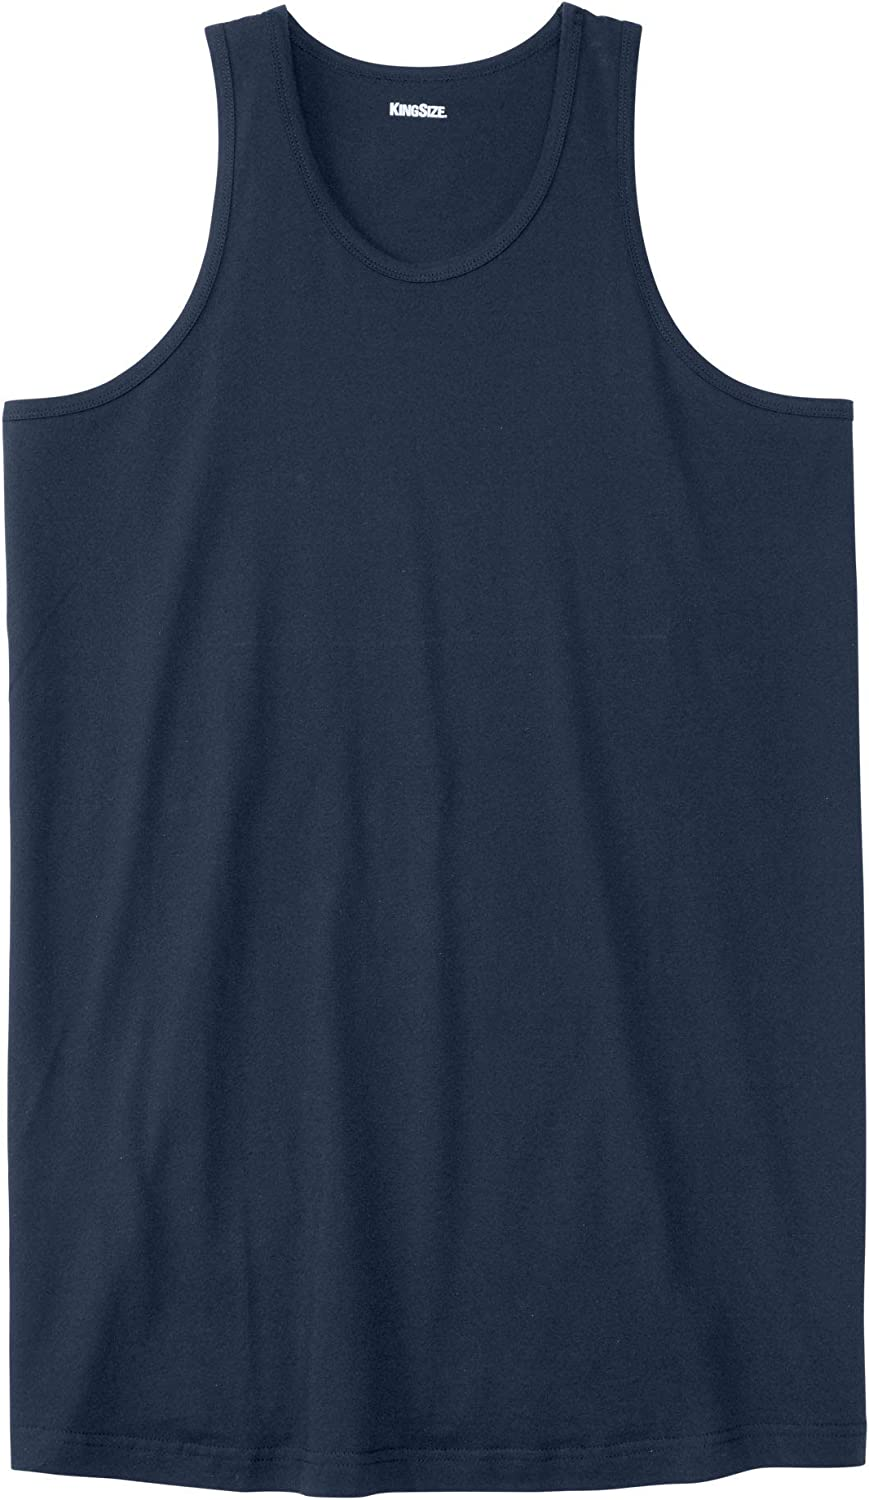 5XL KingSize Mens Big /& Tall Longer-Length Shrink-Less Lightweight Tank Navy Big